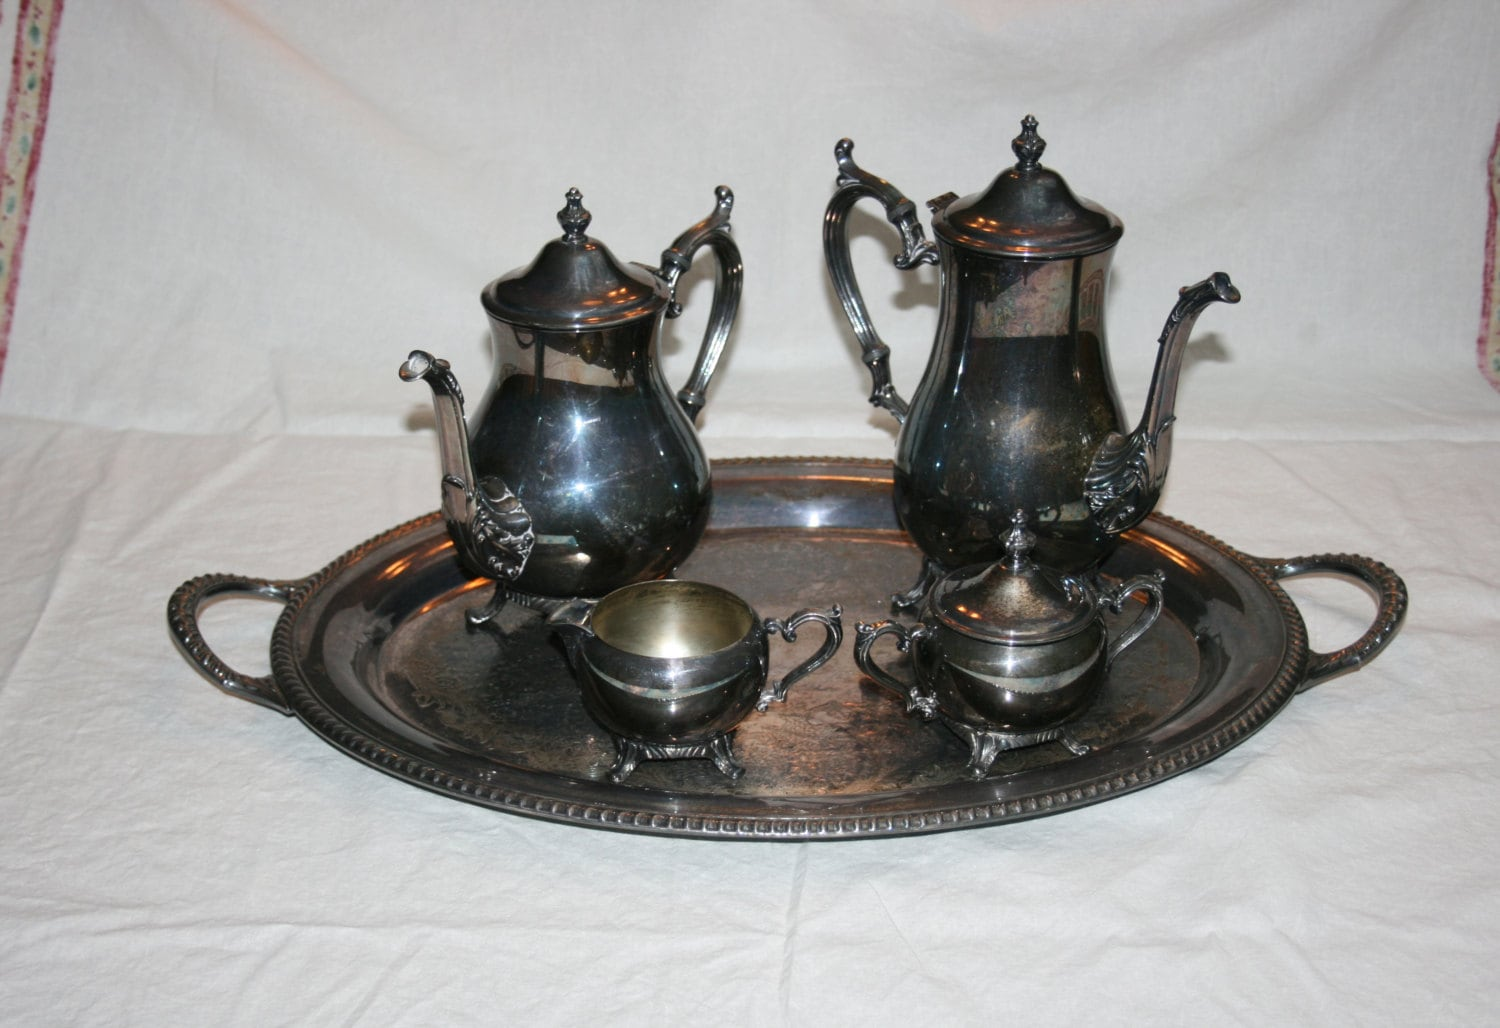 Vintage Wm Rodgers 800 Silver Plate Tea Set 1950\'s - Coffee Pot ...